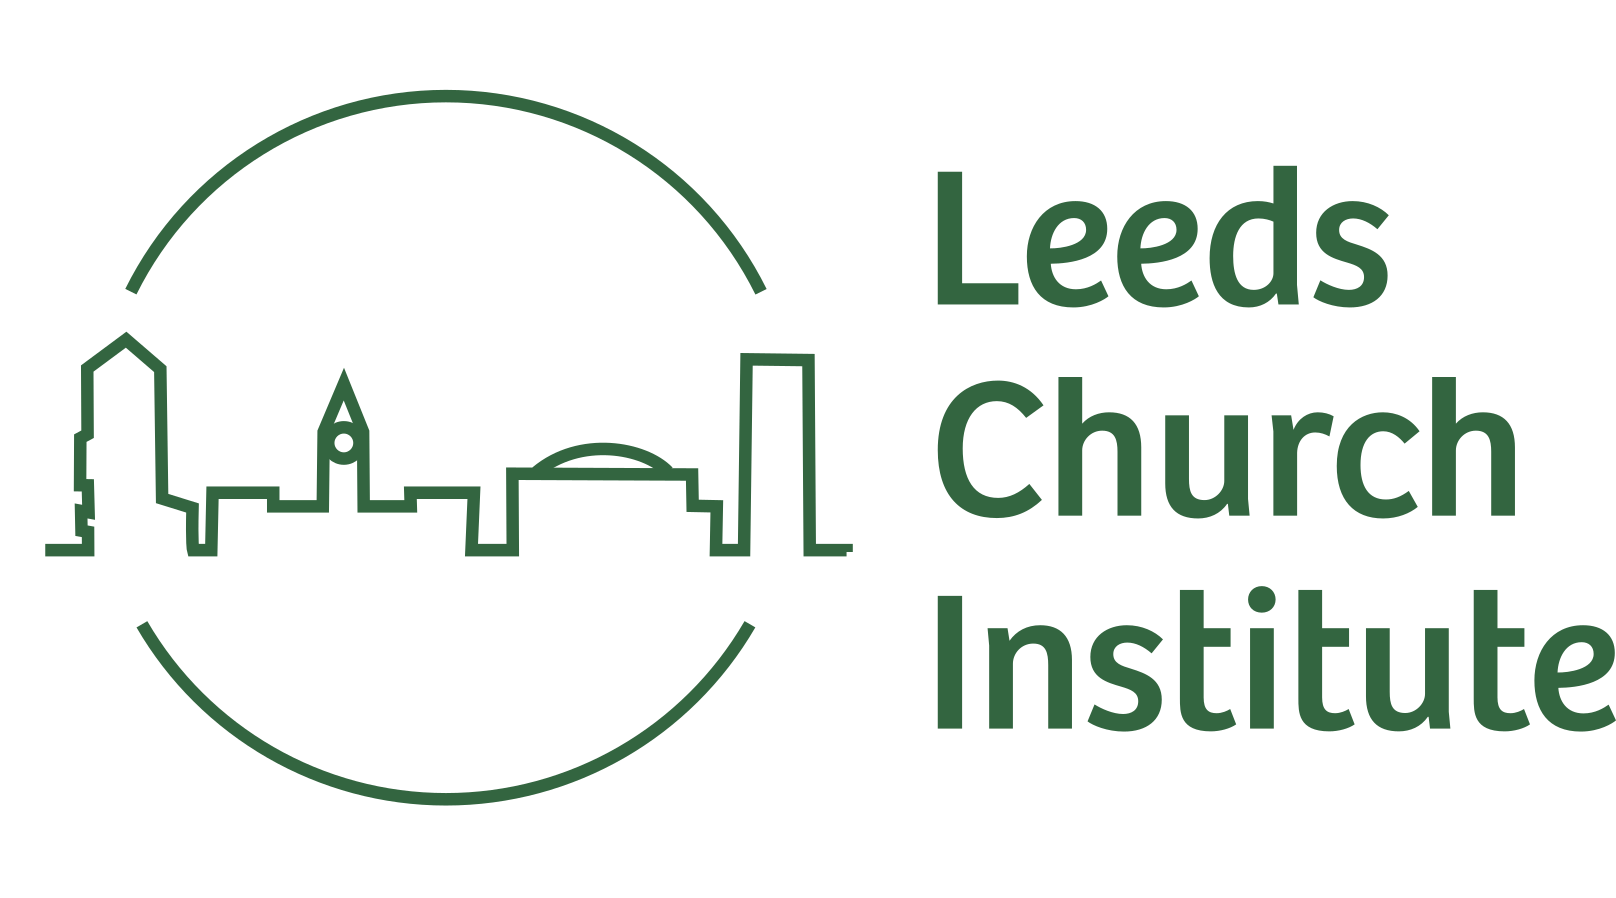 Leeds Church Institute